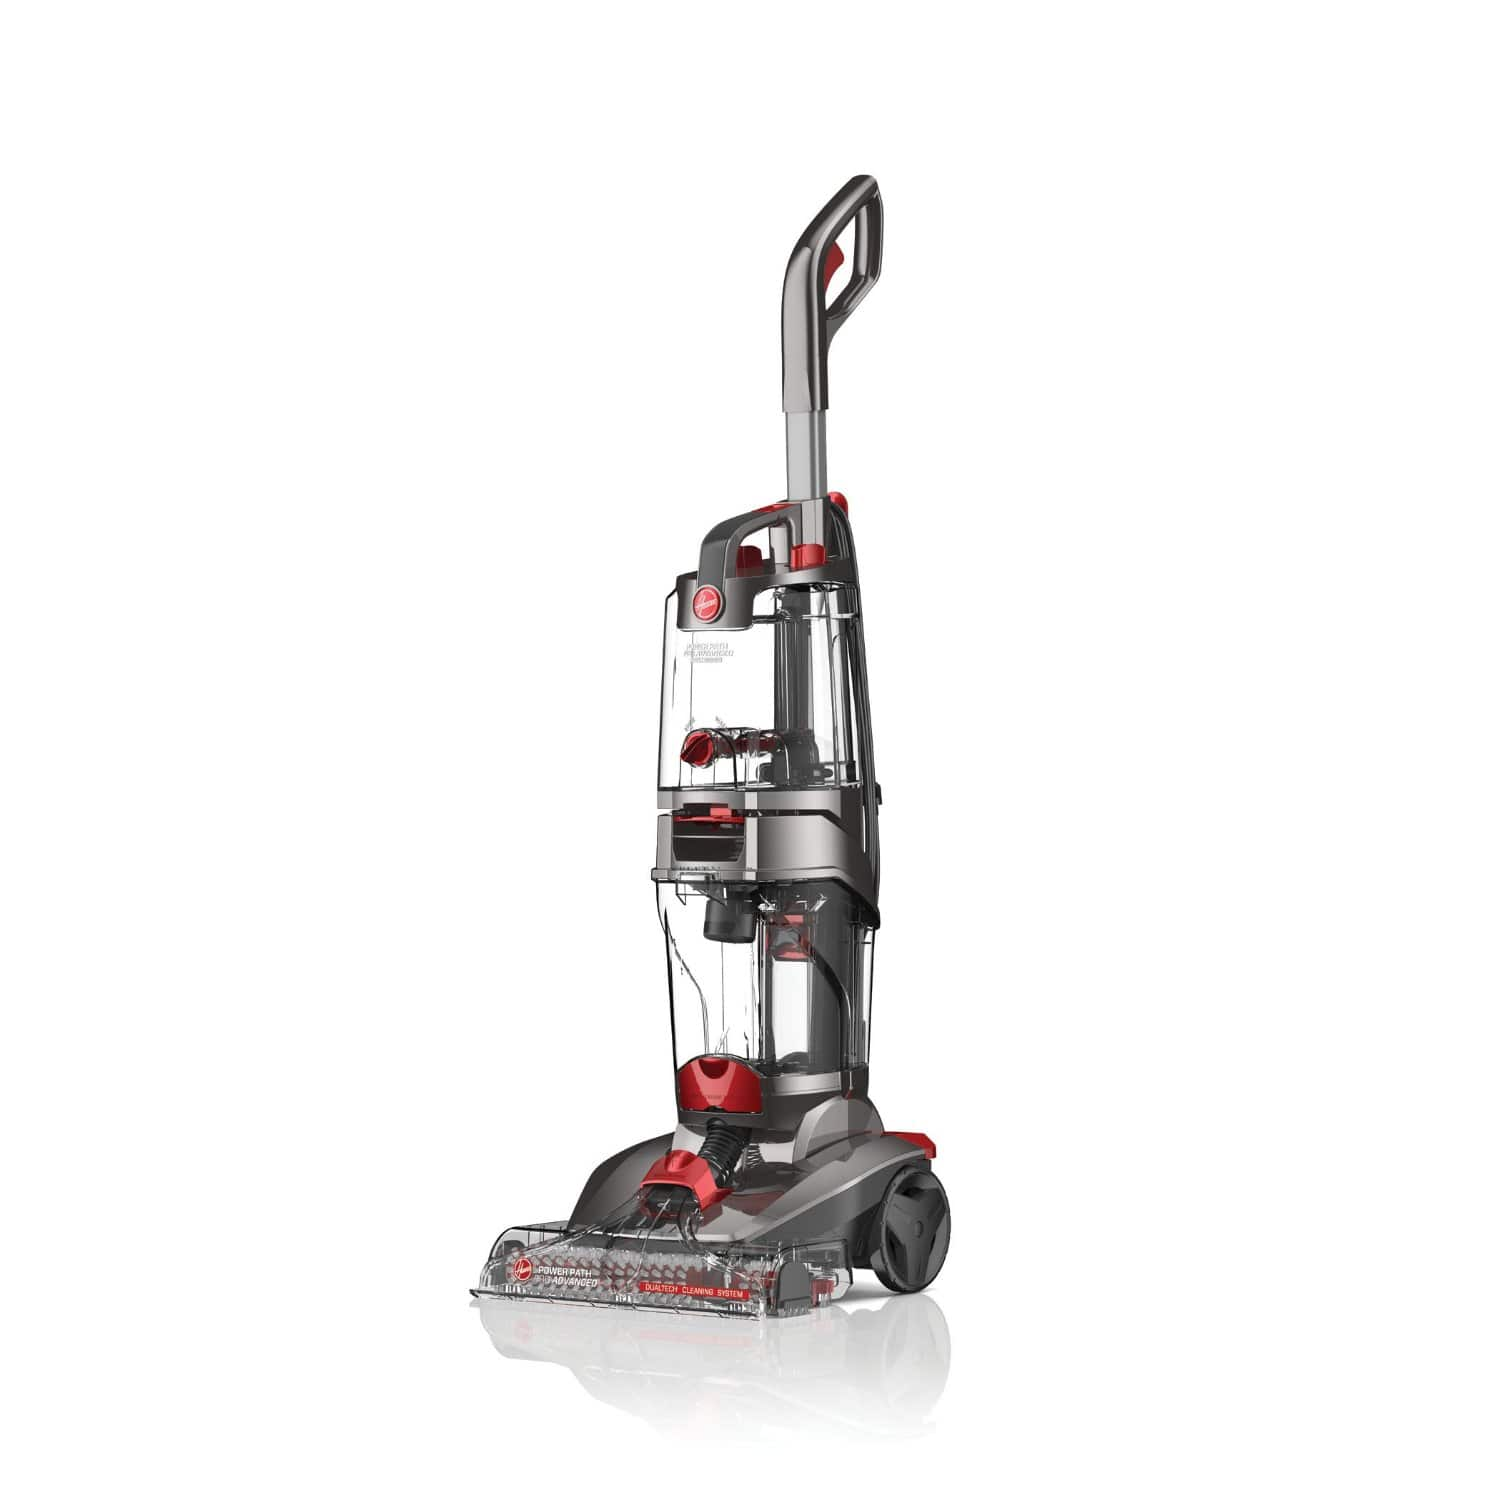 Hoover FH51102 Power Path Pro Advanced Carpet Cleaner $79.99 + Free Shipping Newegg.com